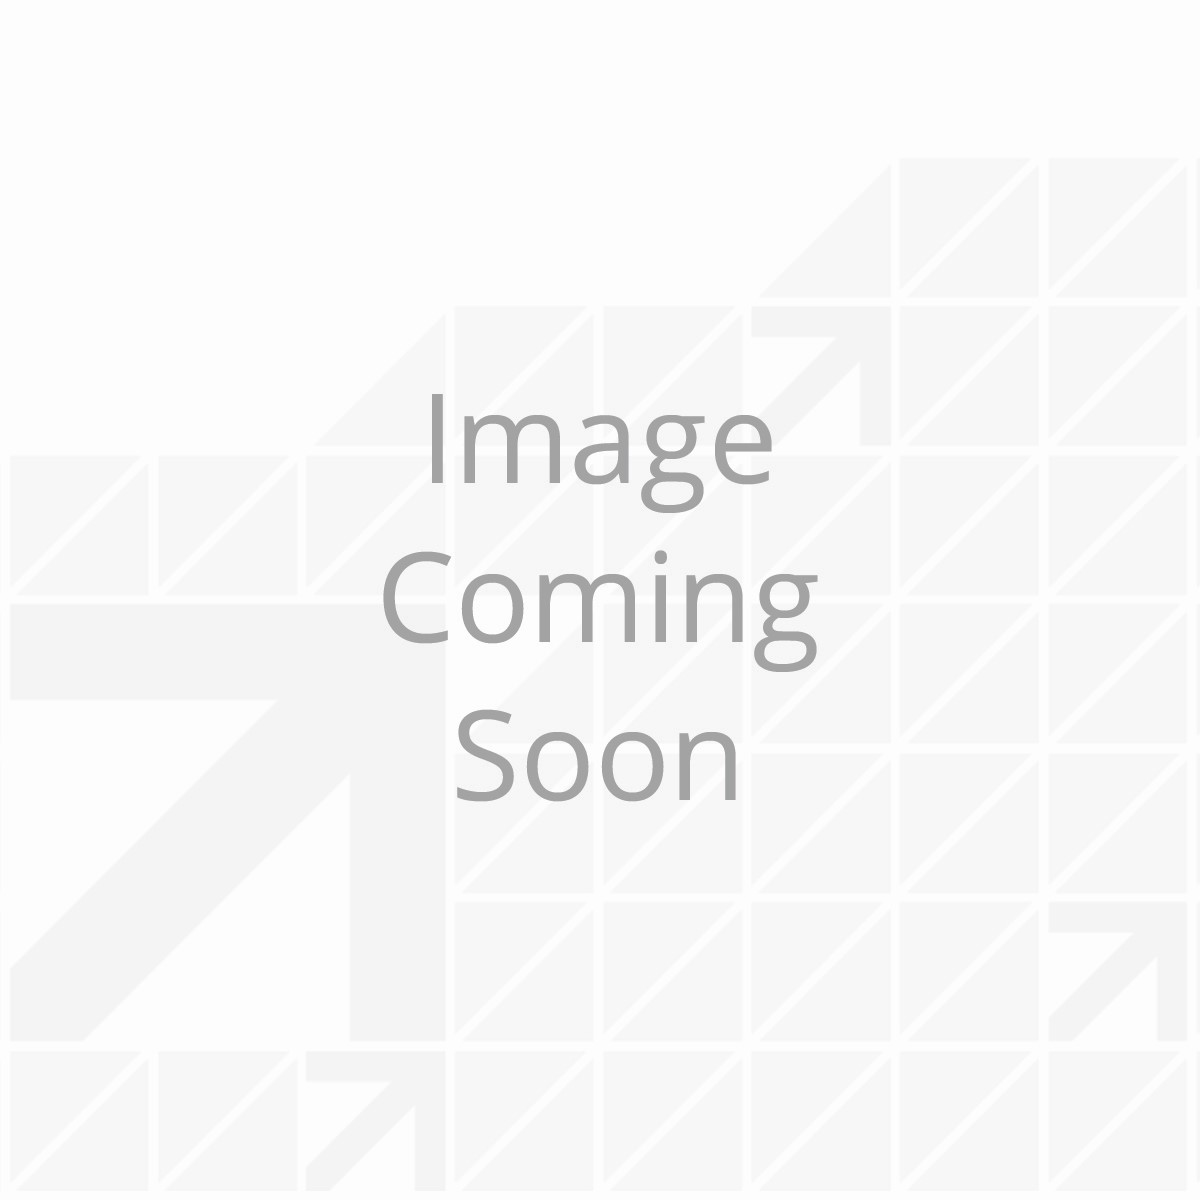 Gear Motor Assembly with Pin - Double Shaft (High Torque)